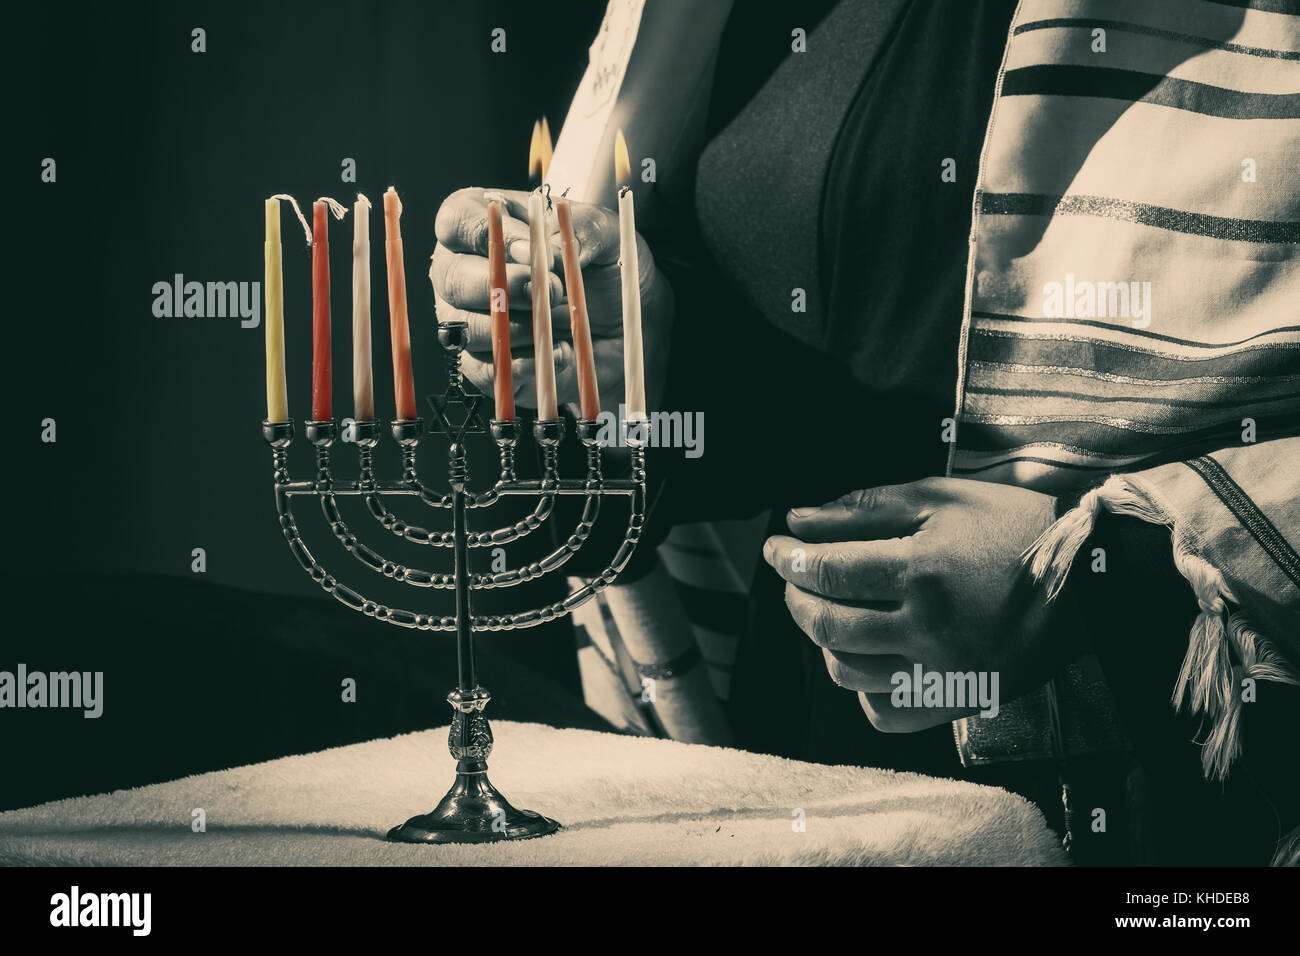 Lighting Menoral Candles On Jewish Candle Lights